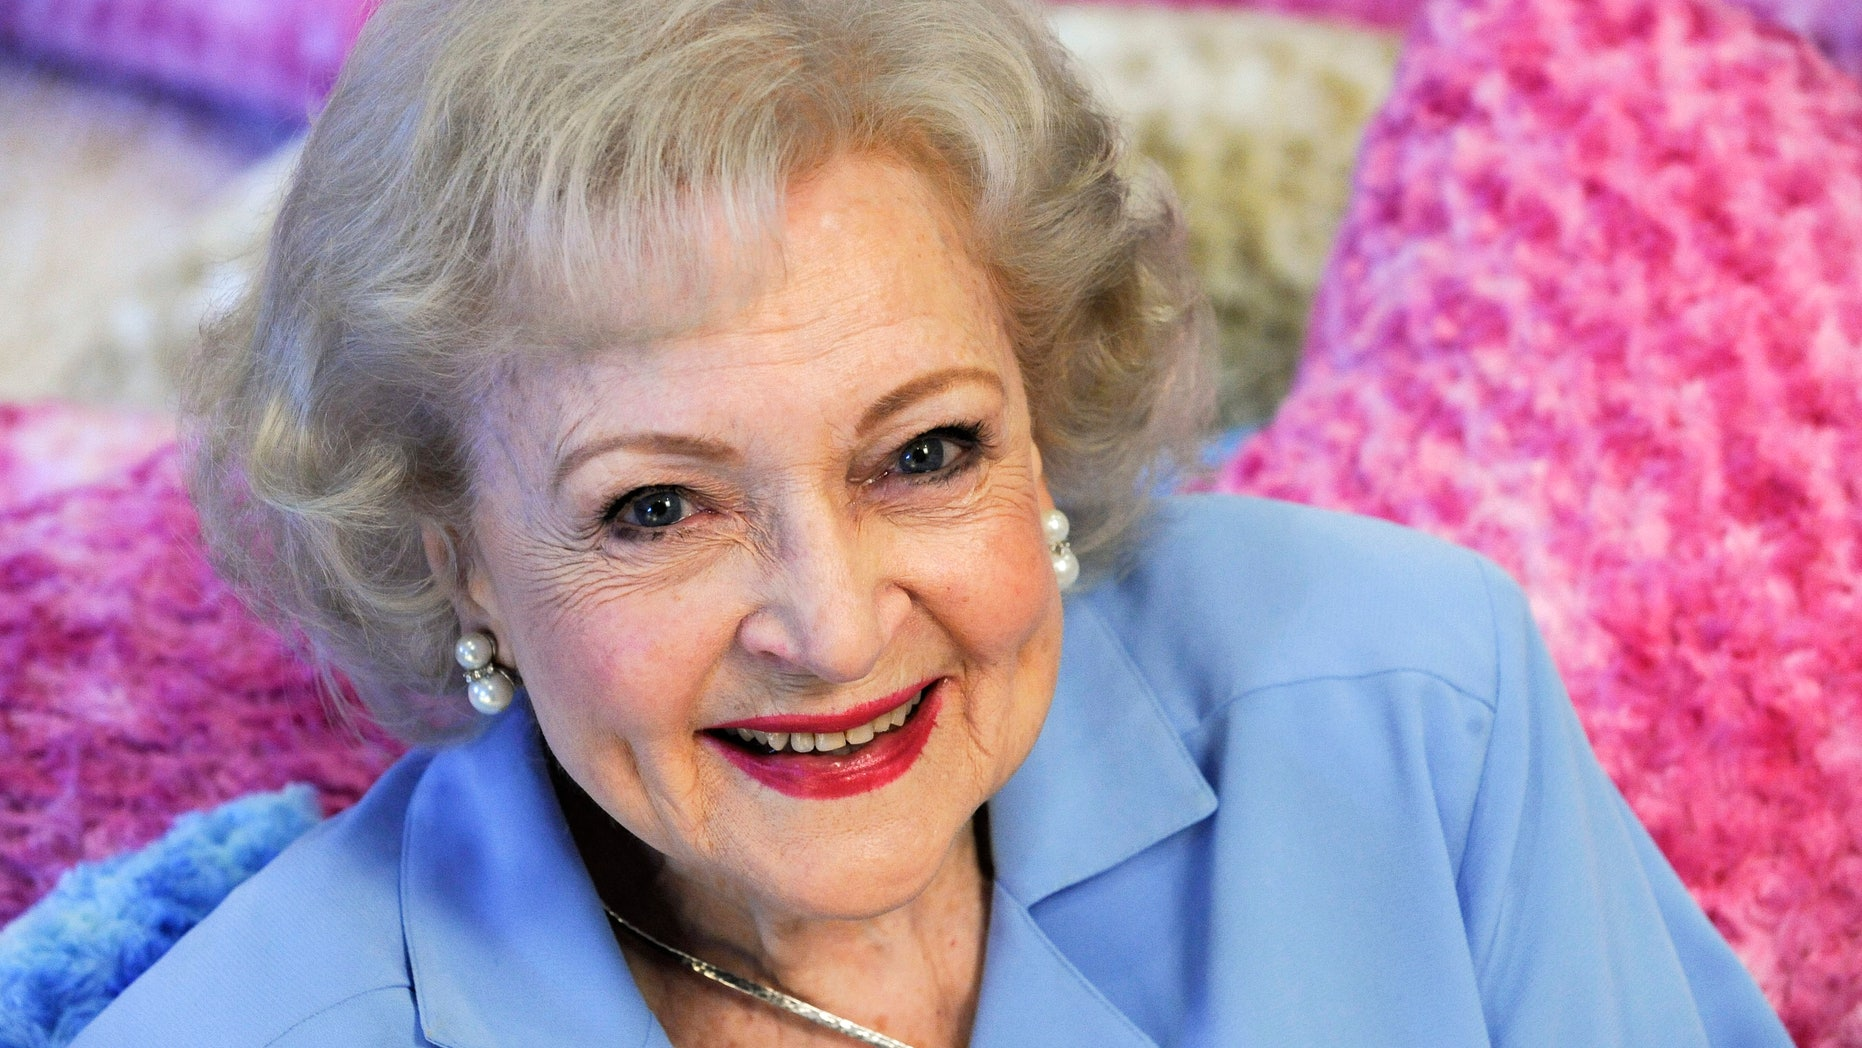 Actress Betty White poses for a photograph in Los Angeles, California May 26, 2010.